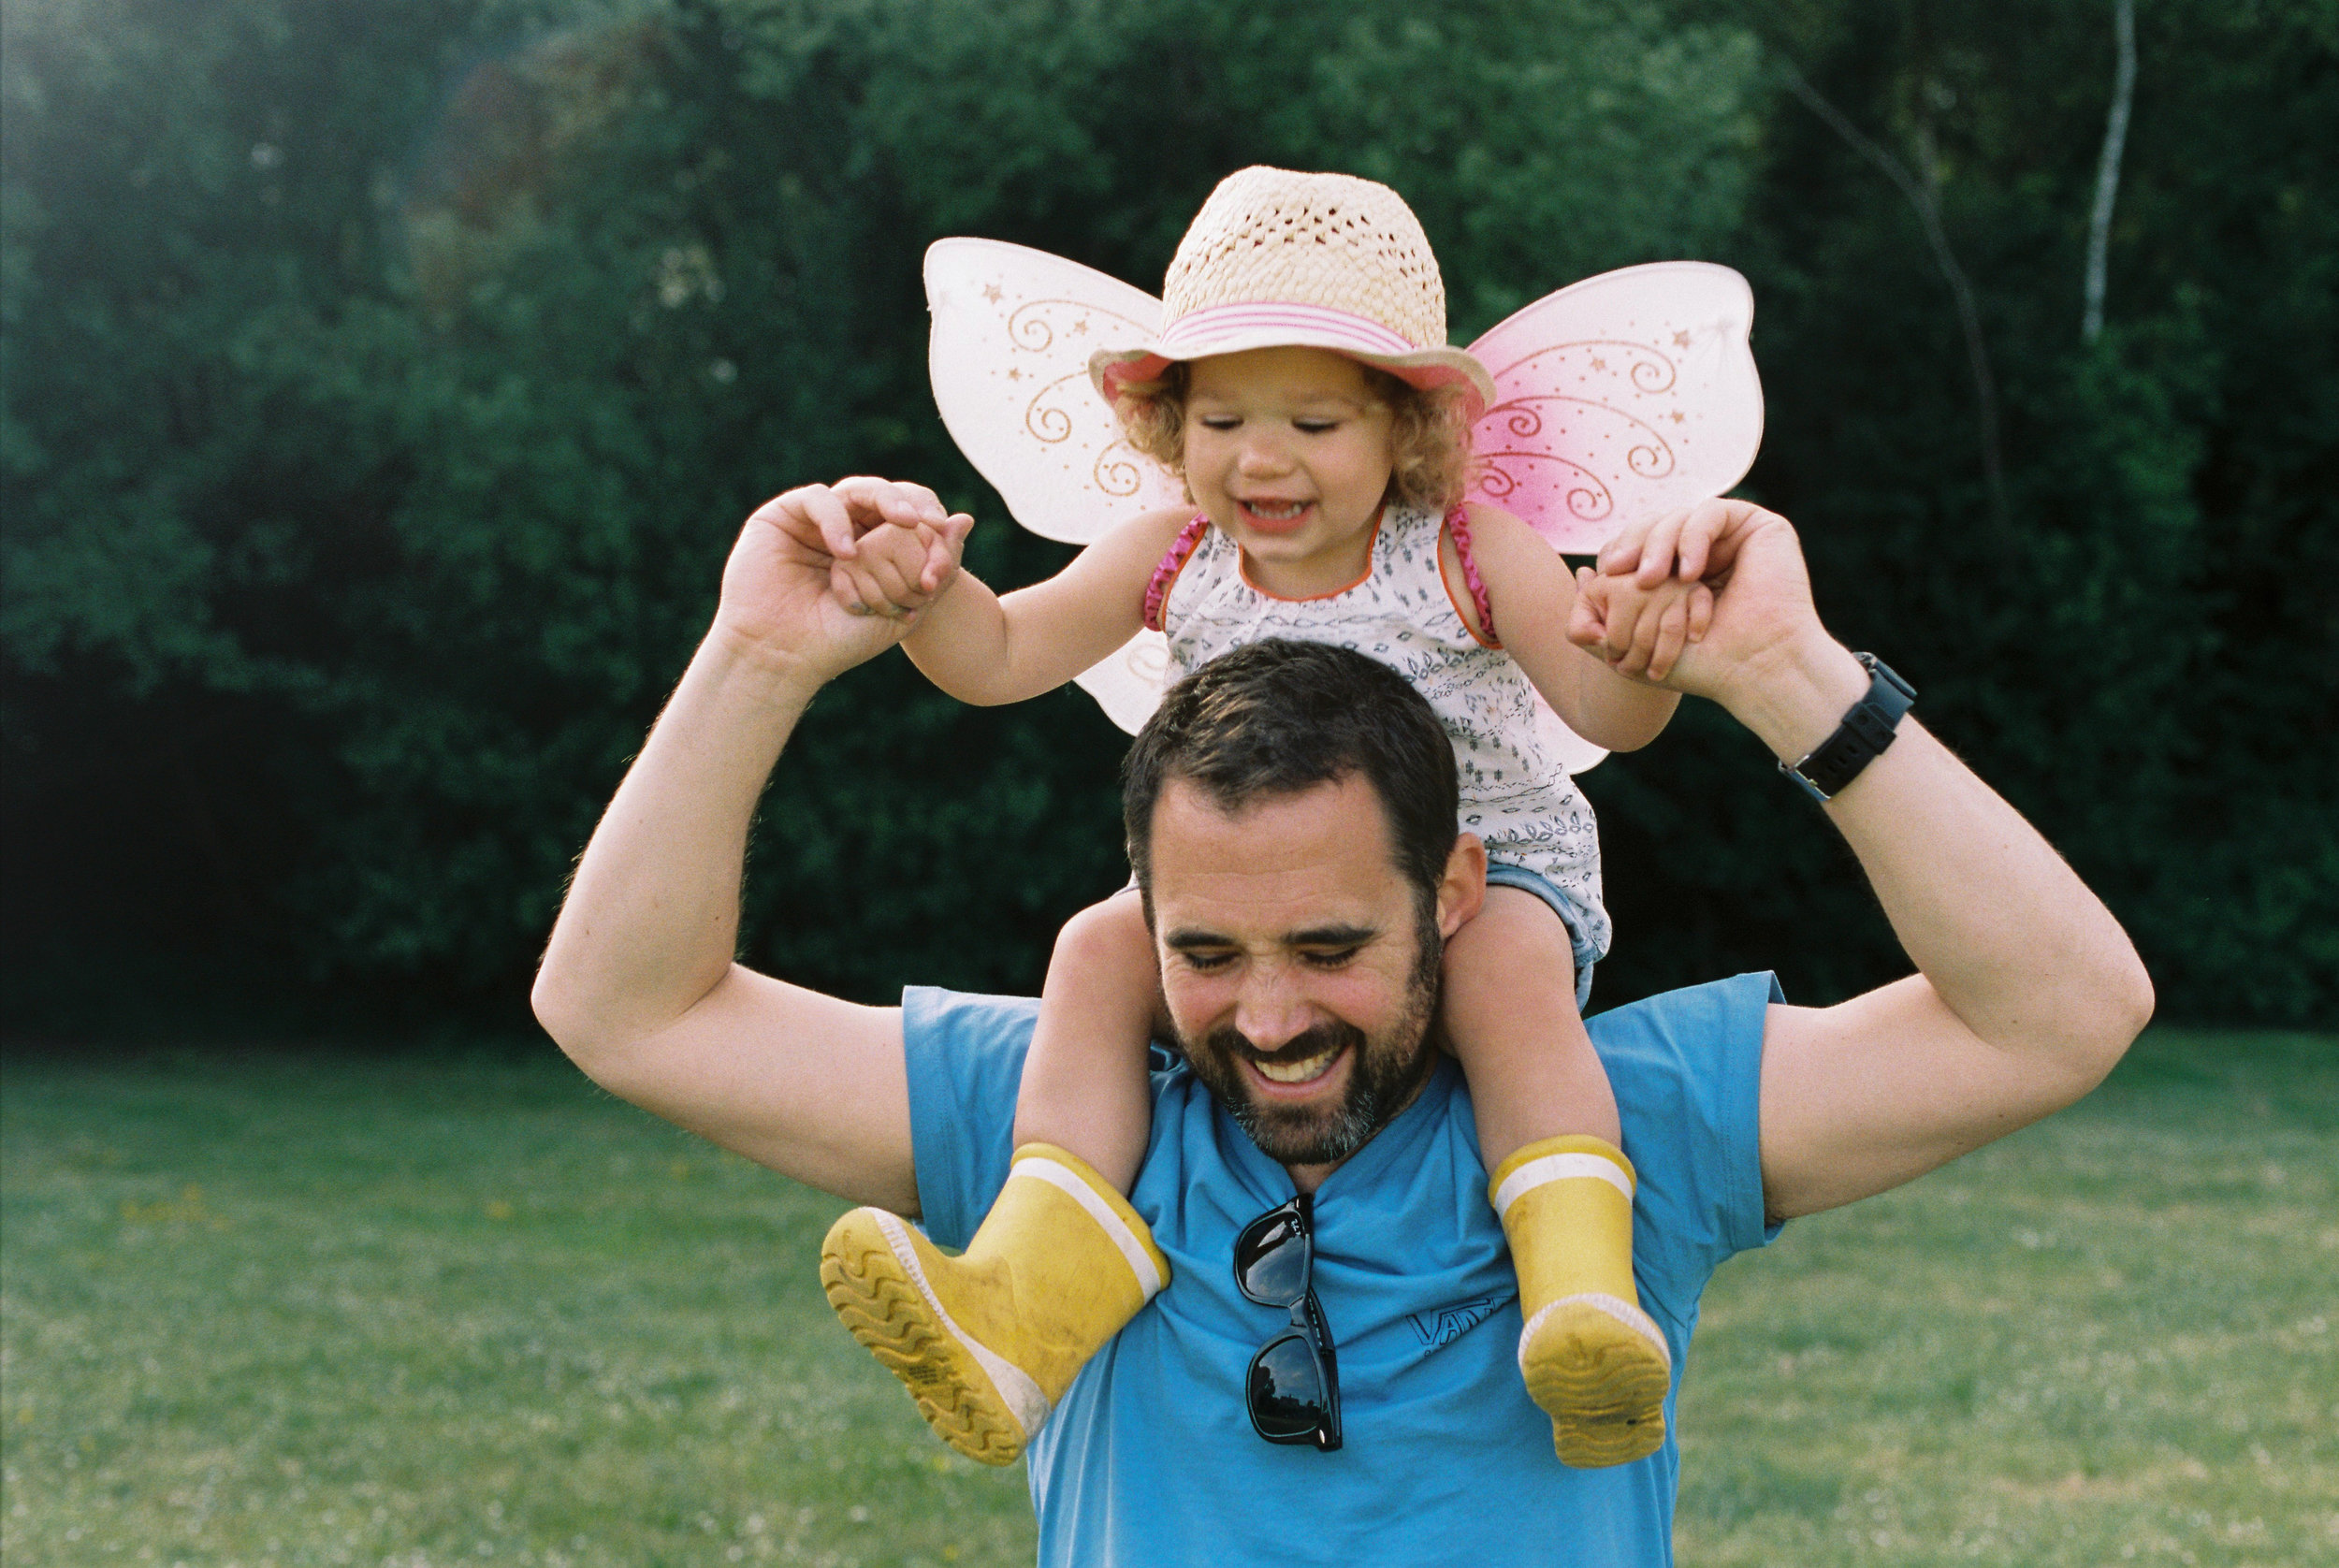 guildford_family_photographer_30 copy.jpg